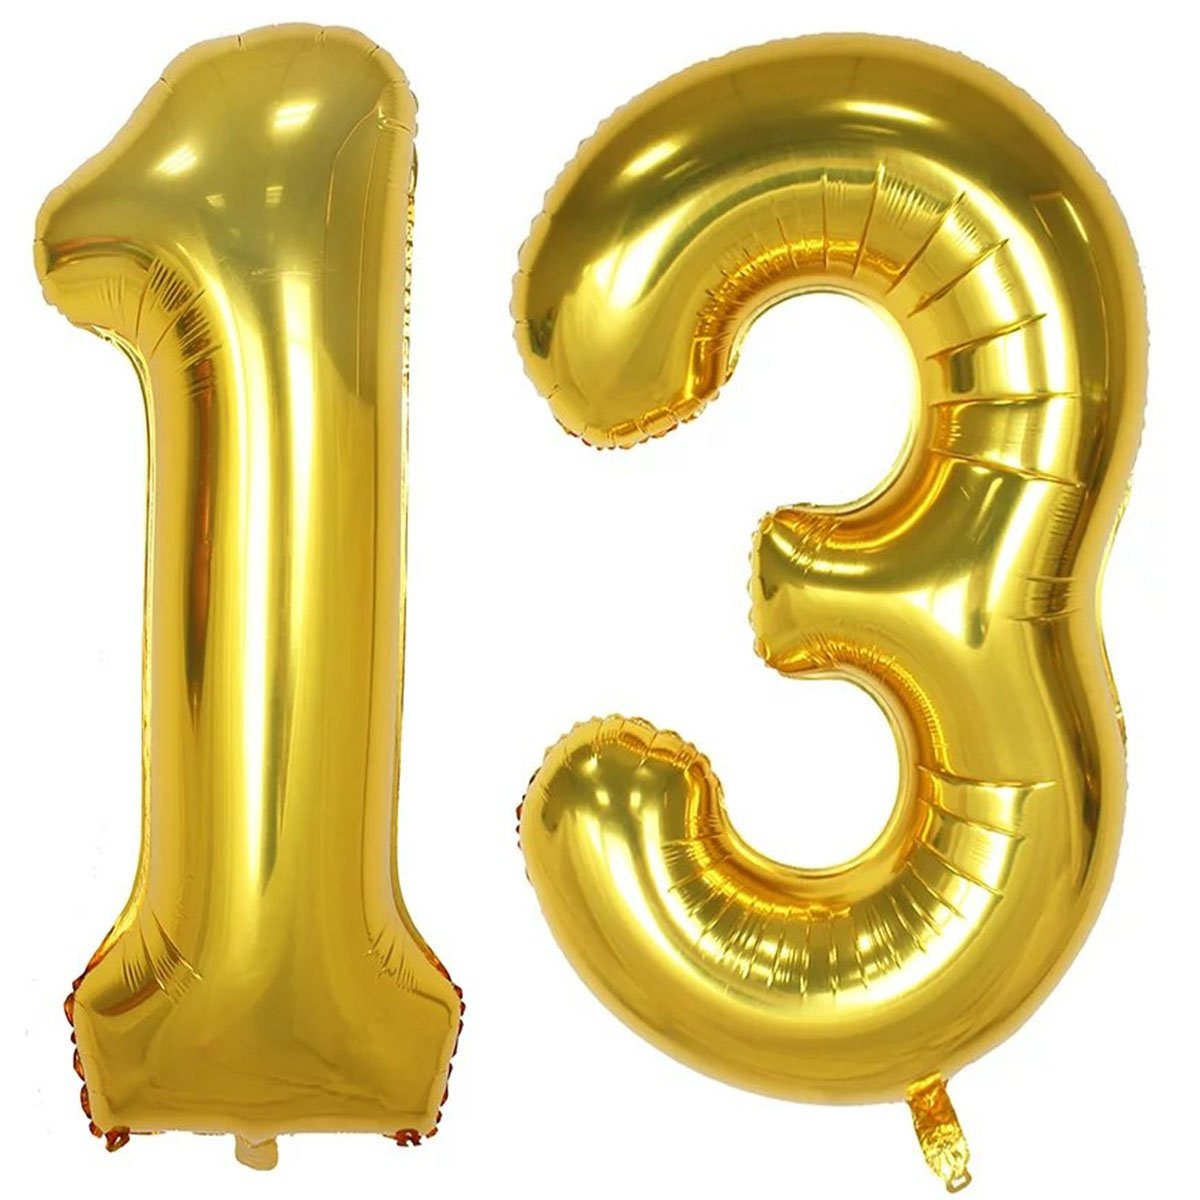 40inch Gold Foil 13 Helium Jumbo Digital Number Balloons 13th Birthday Decoration For Girls Or Boys Sweet Party Supplies